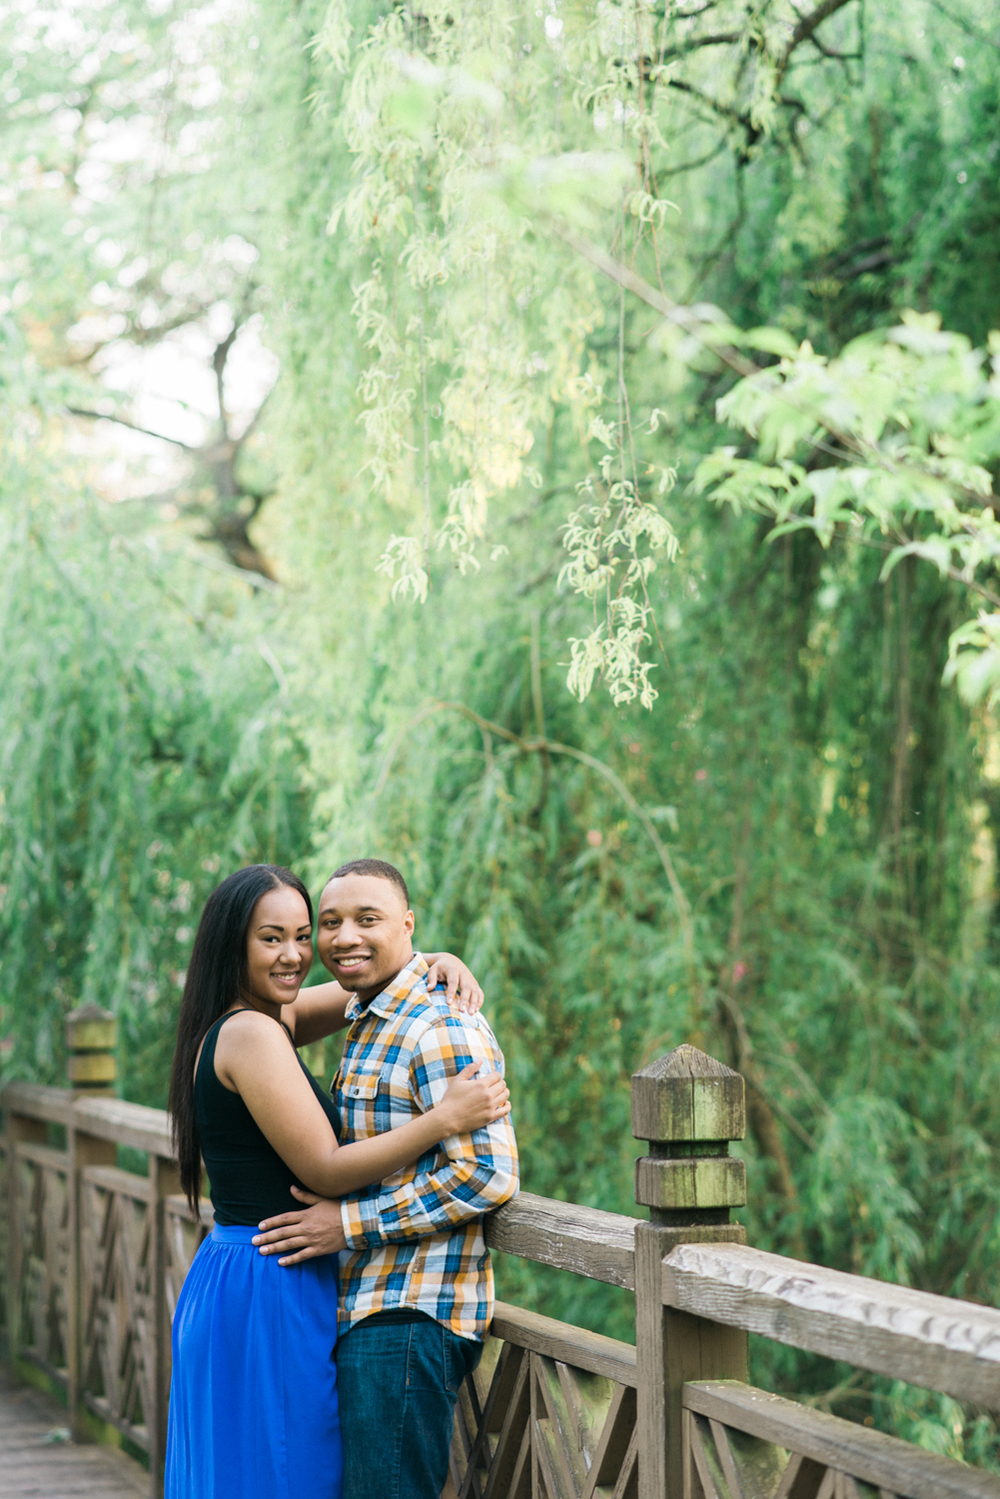 portland-engagement-photographer-wsu-graduation-portrait-crystal-springs-rhododendron-garden-shelley-marie-photo-32